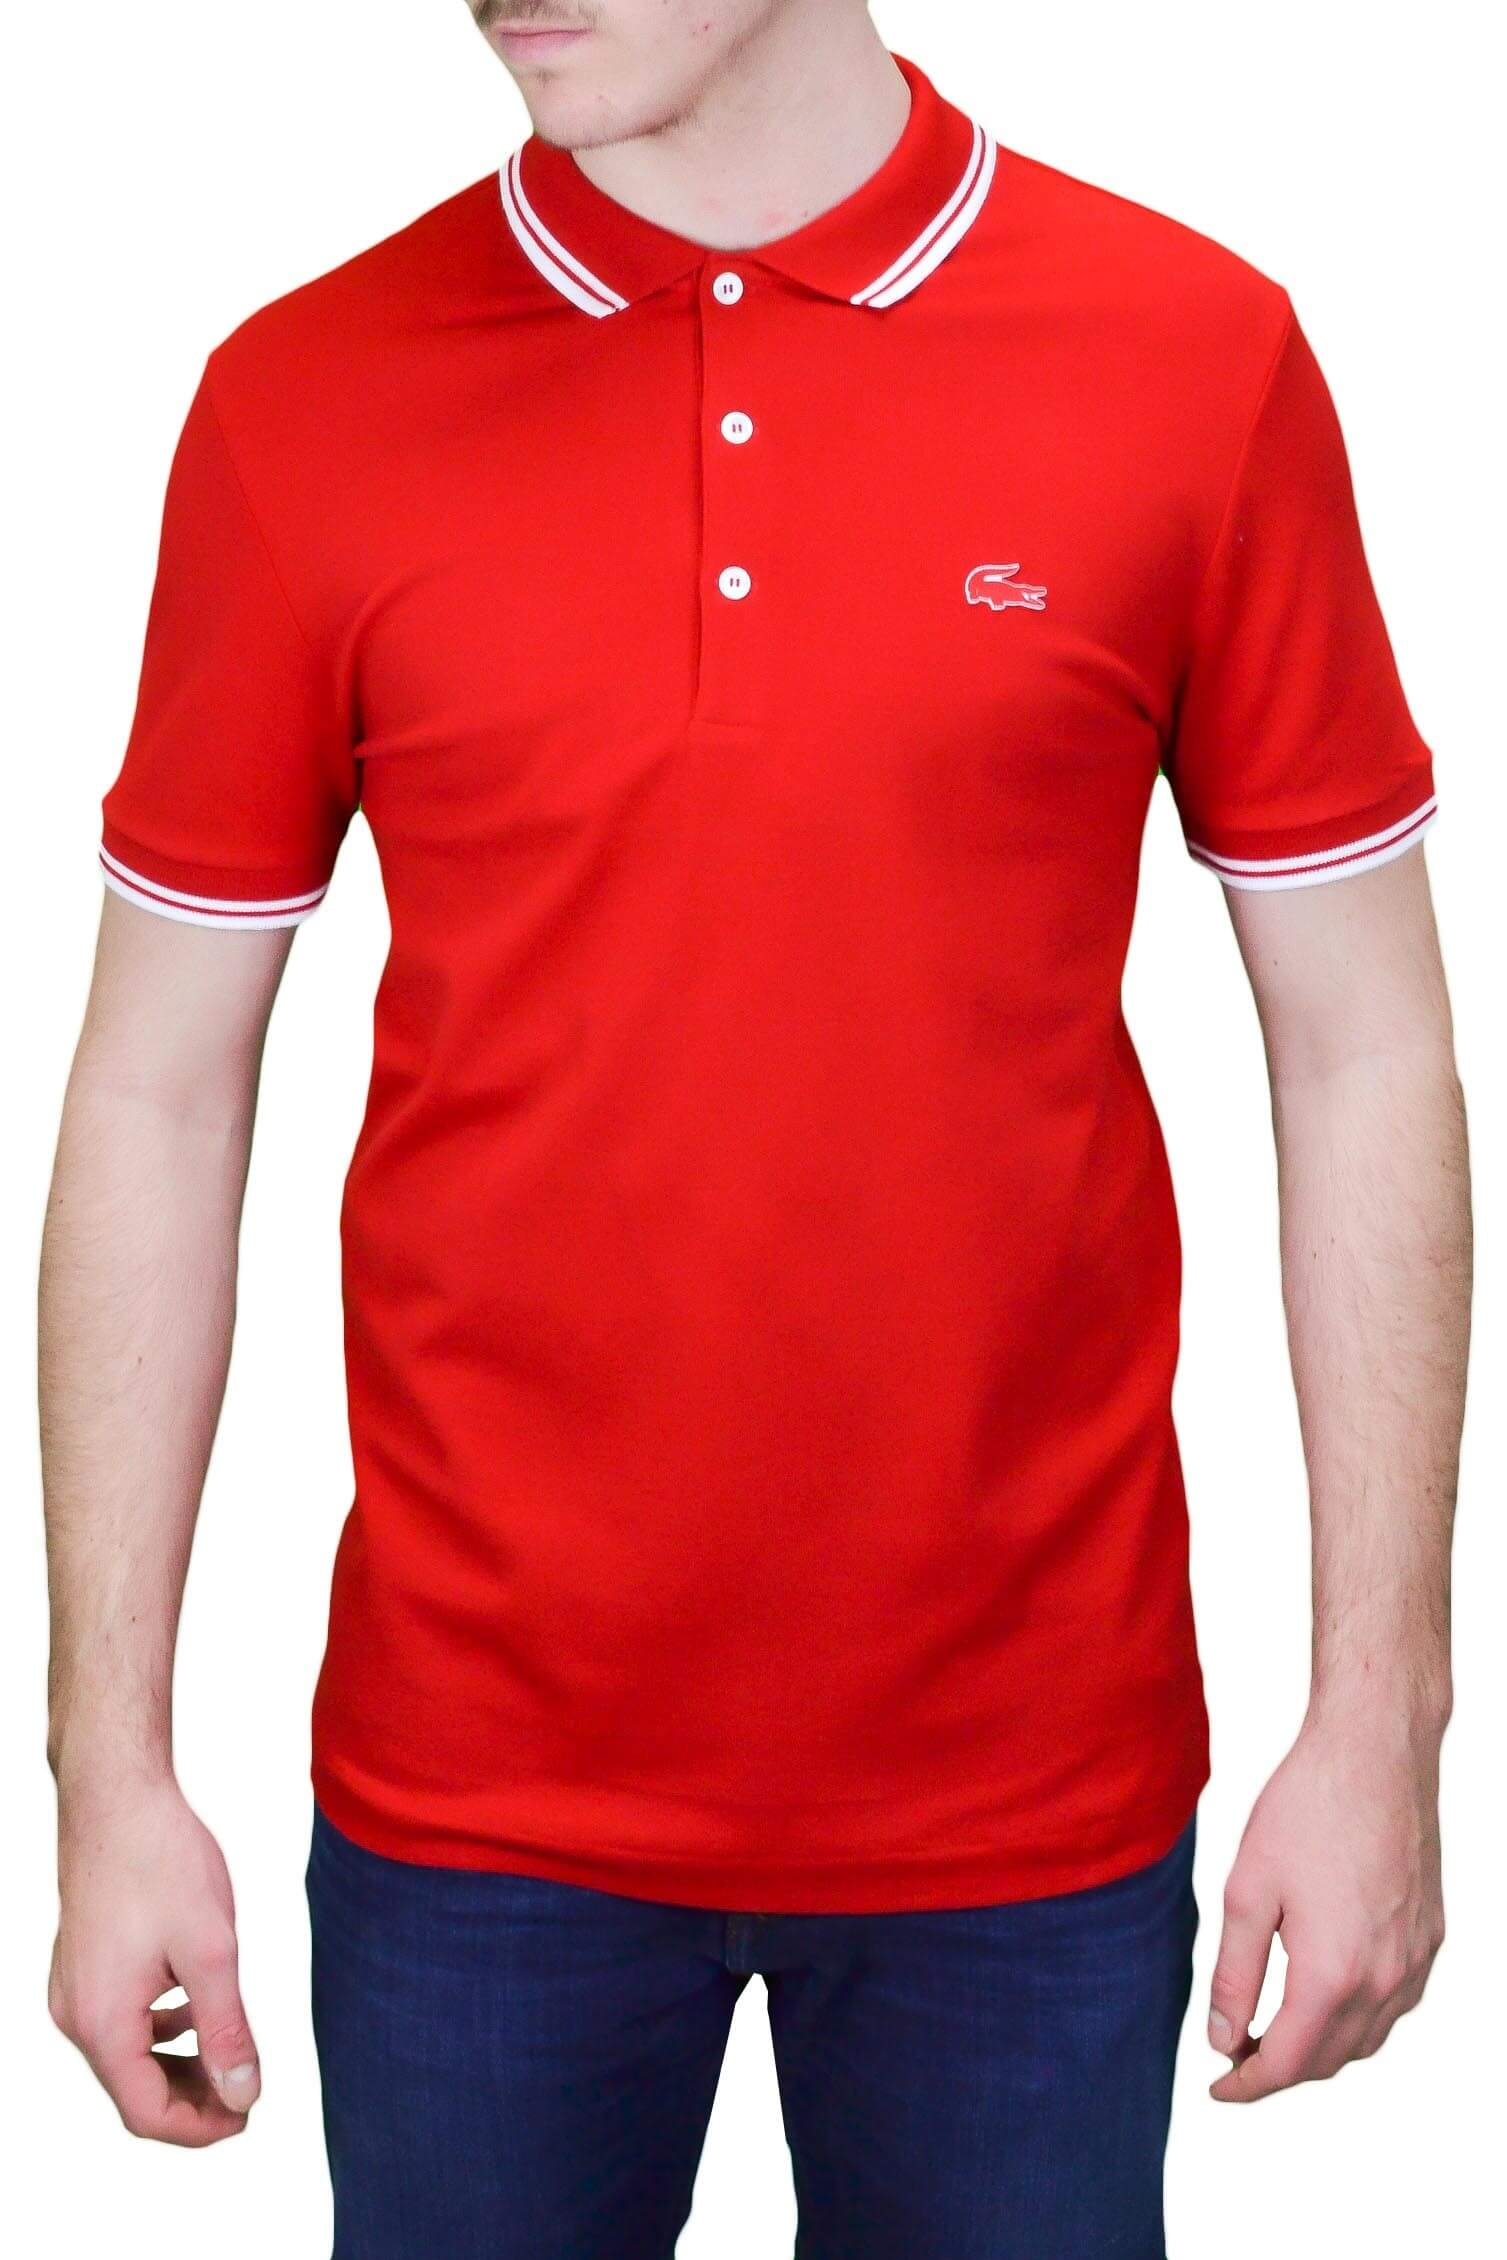 3 Prix Pour Boutons Polo Au Meilleur Lacoste Rouge Toujours Homme IYDeH9WE2